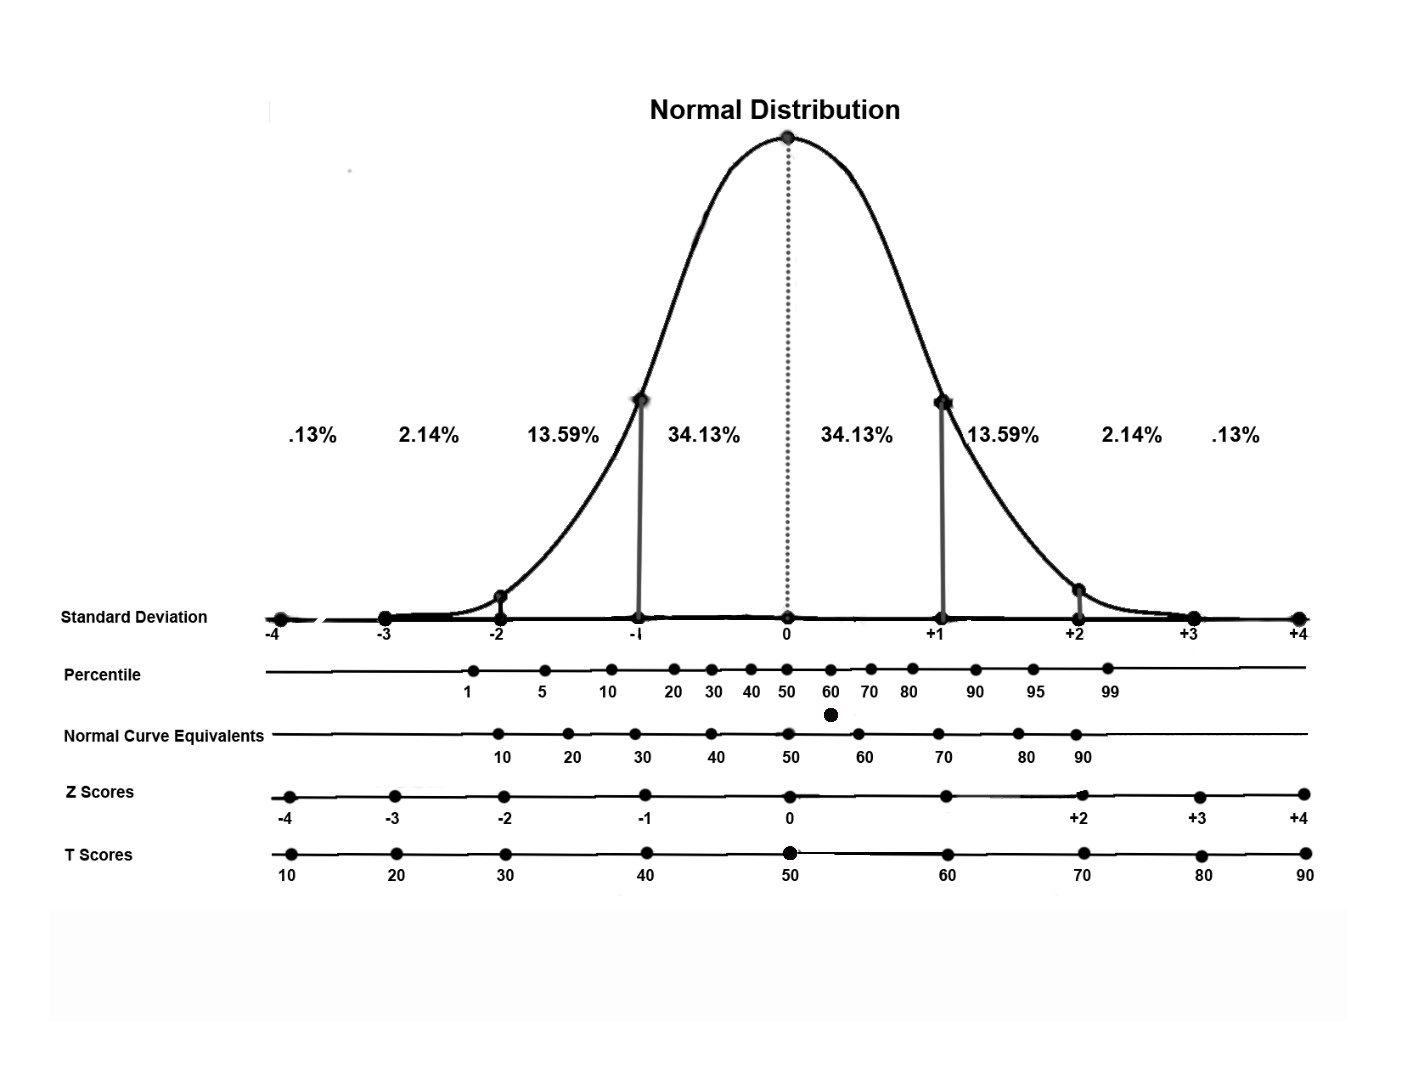 What is the difference between percentile and t score where to normal distributiong ccuart Image collections